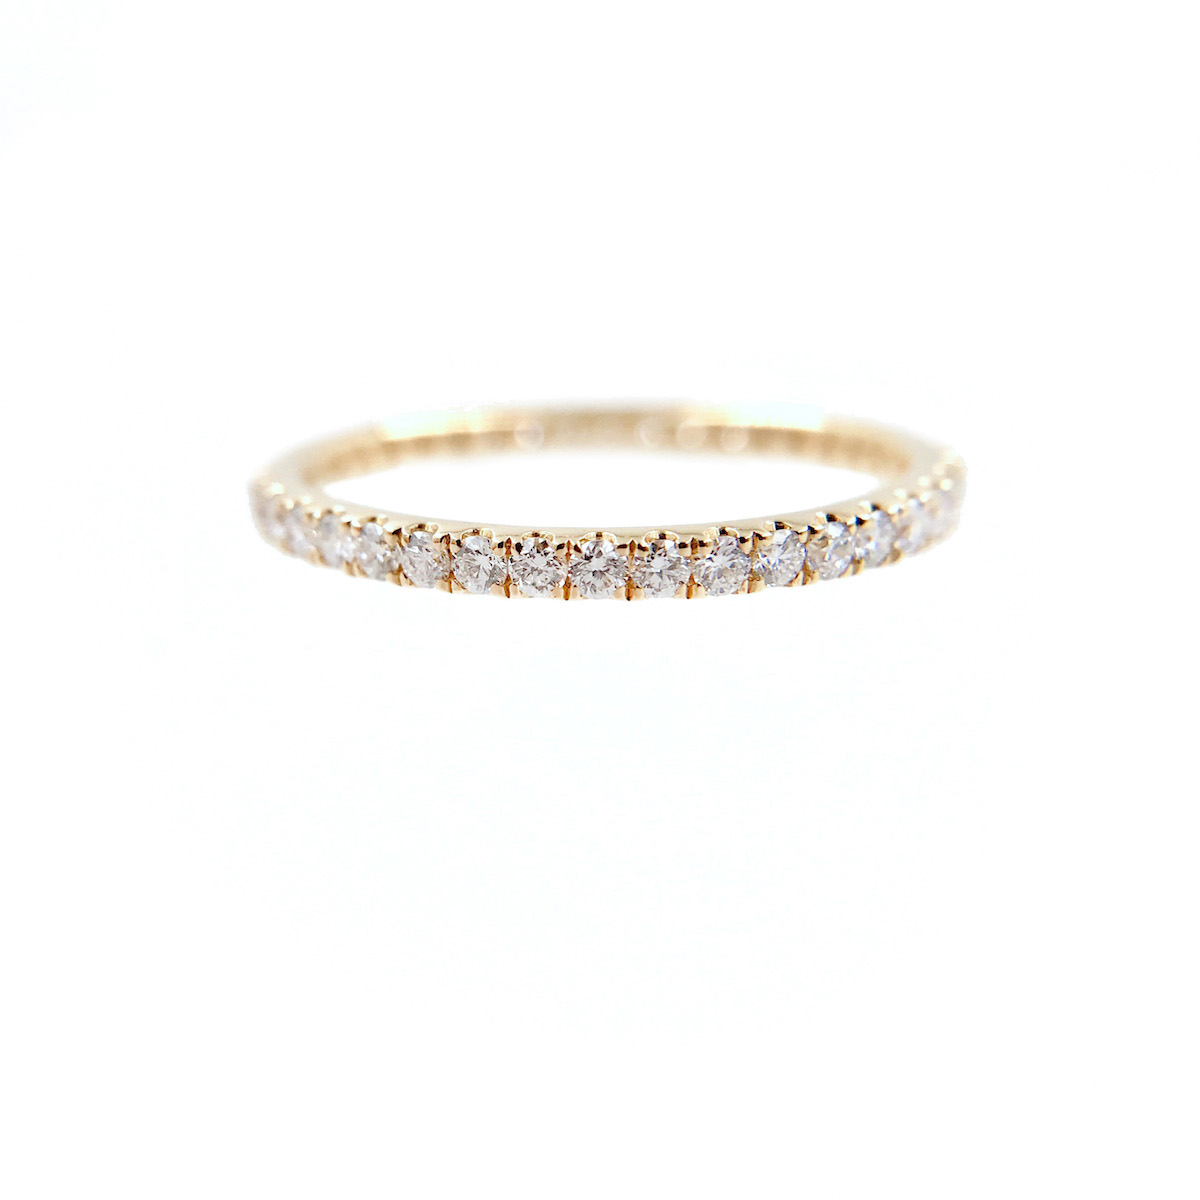 40-2mm-Pavé-Diamond-Eternity-Band-Ring-Guard-Spacer-14k-18k-JEWELYRIE_7740